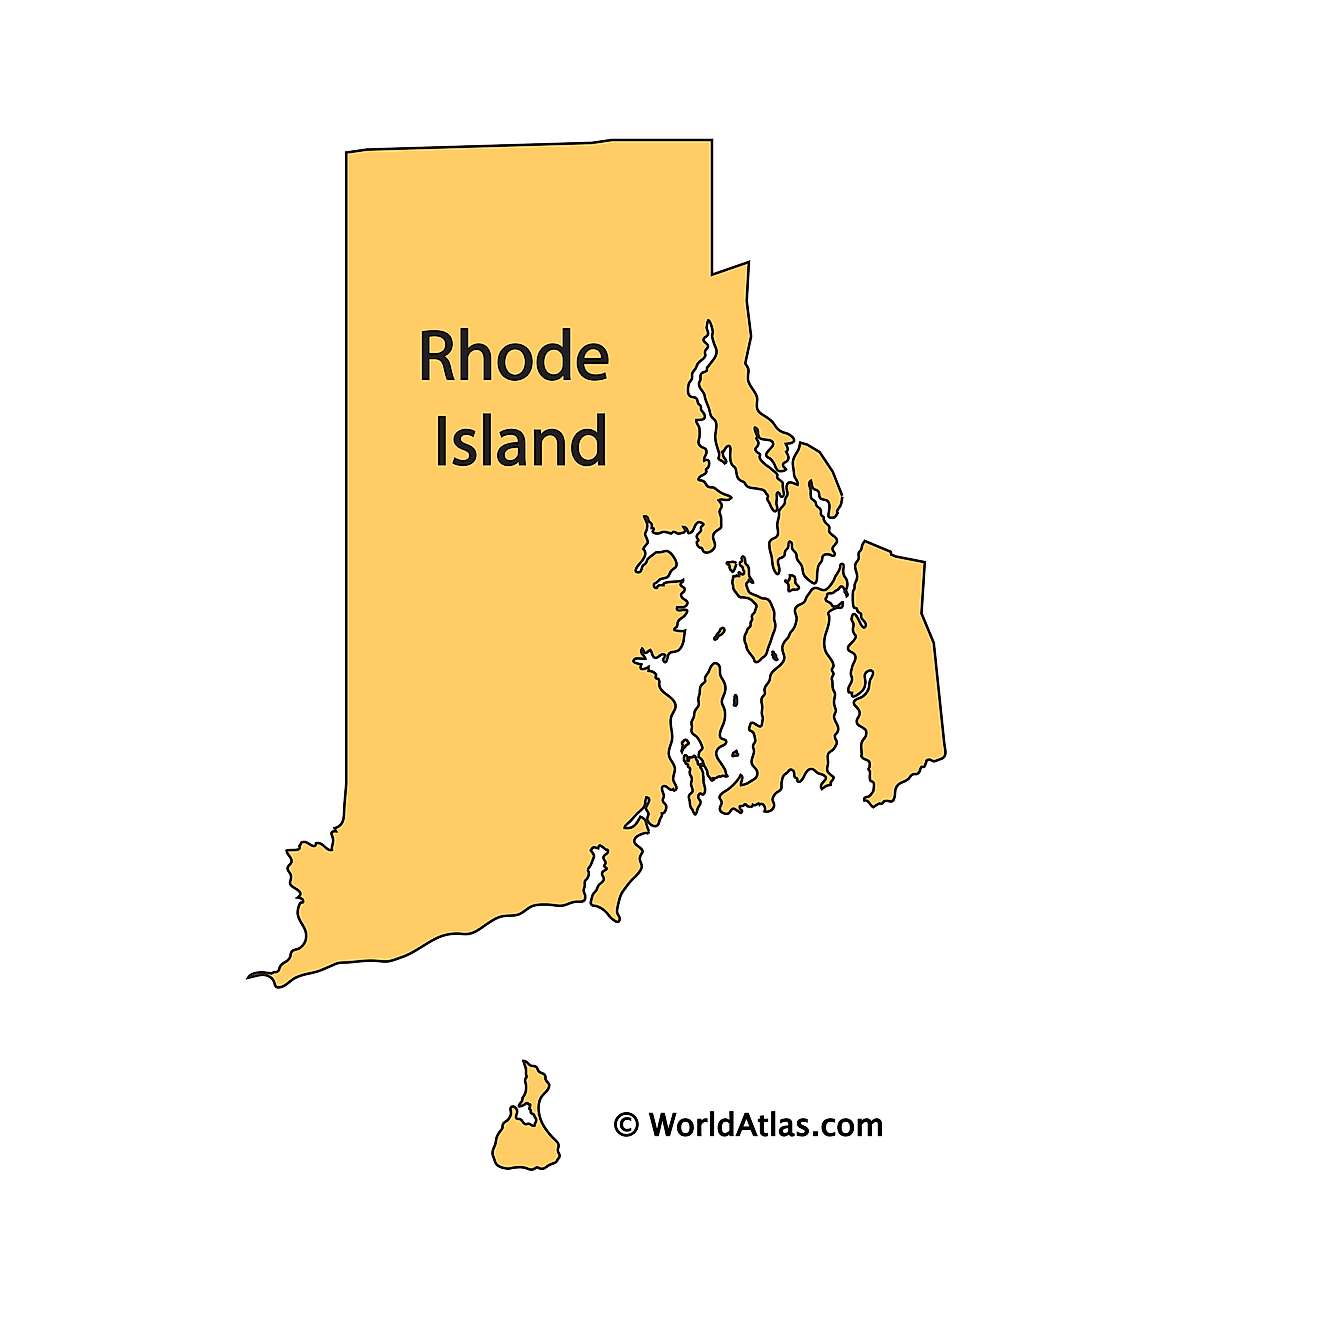 Outline Map of Rhode Island